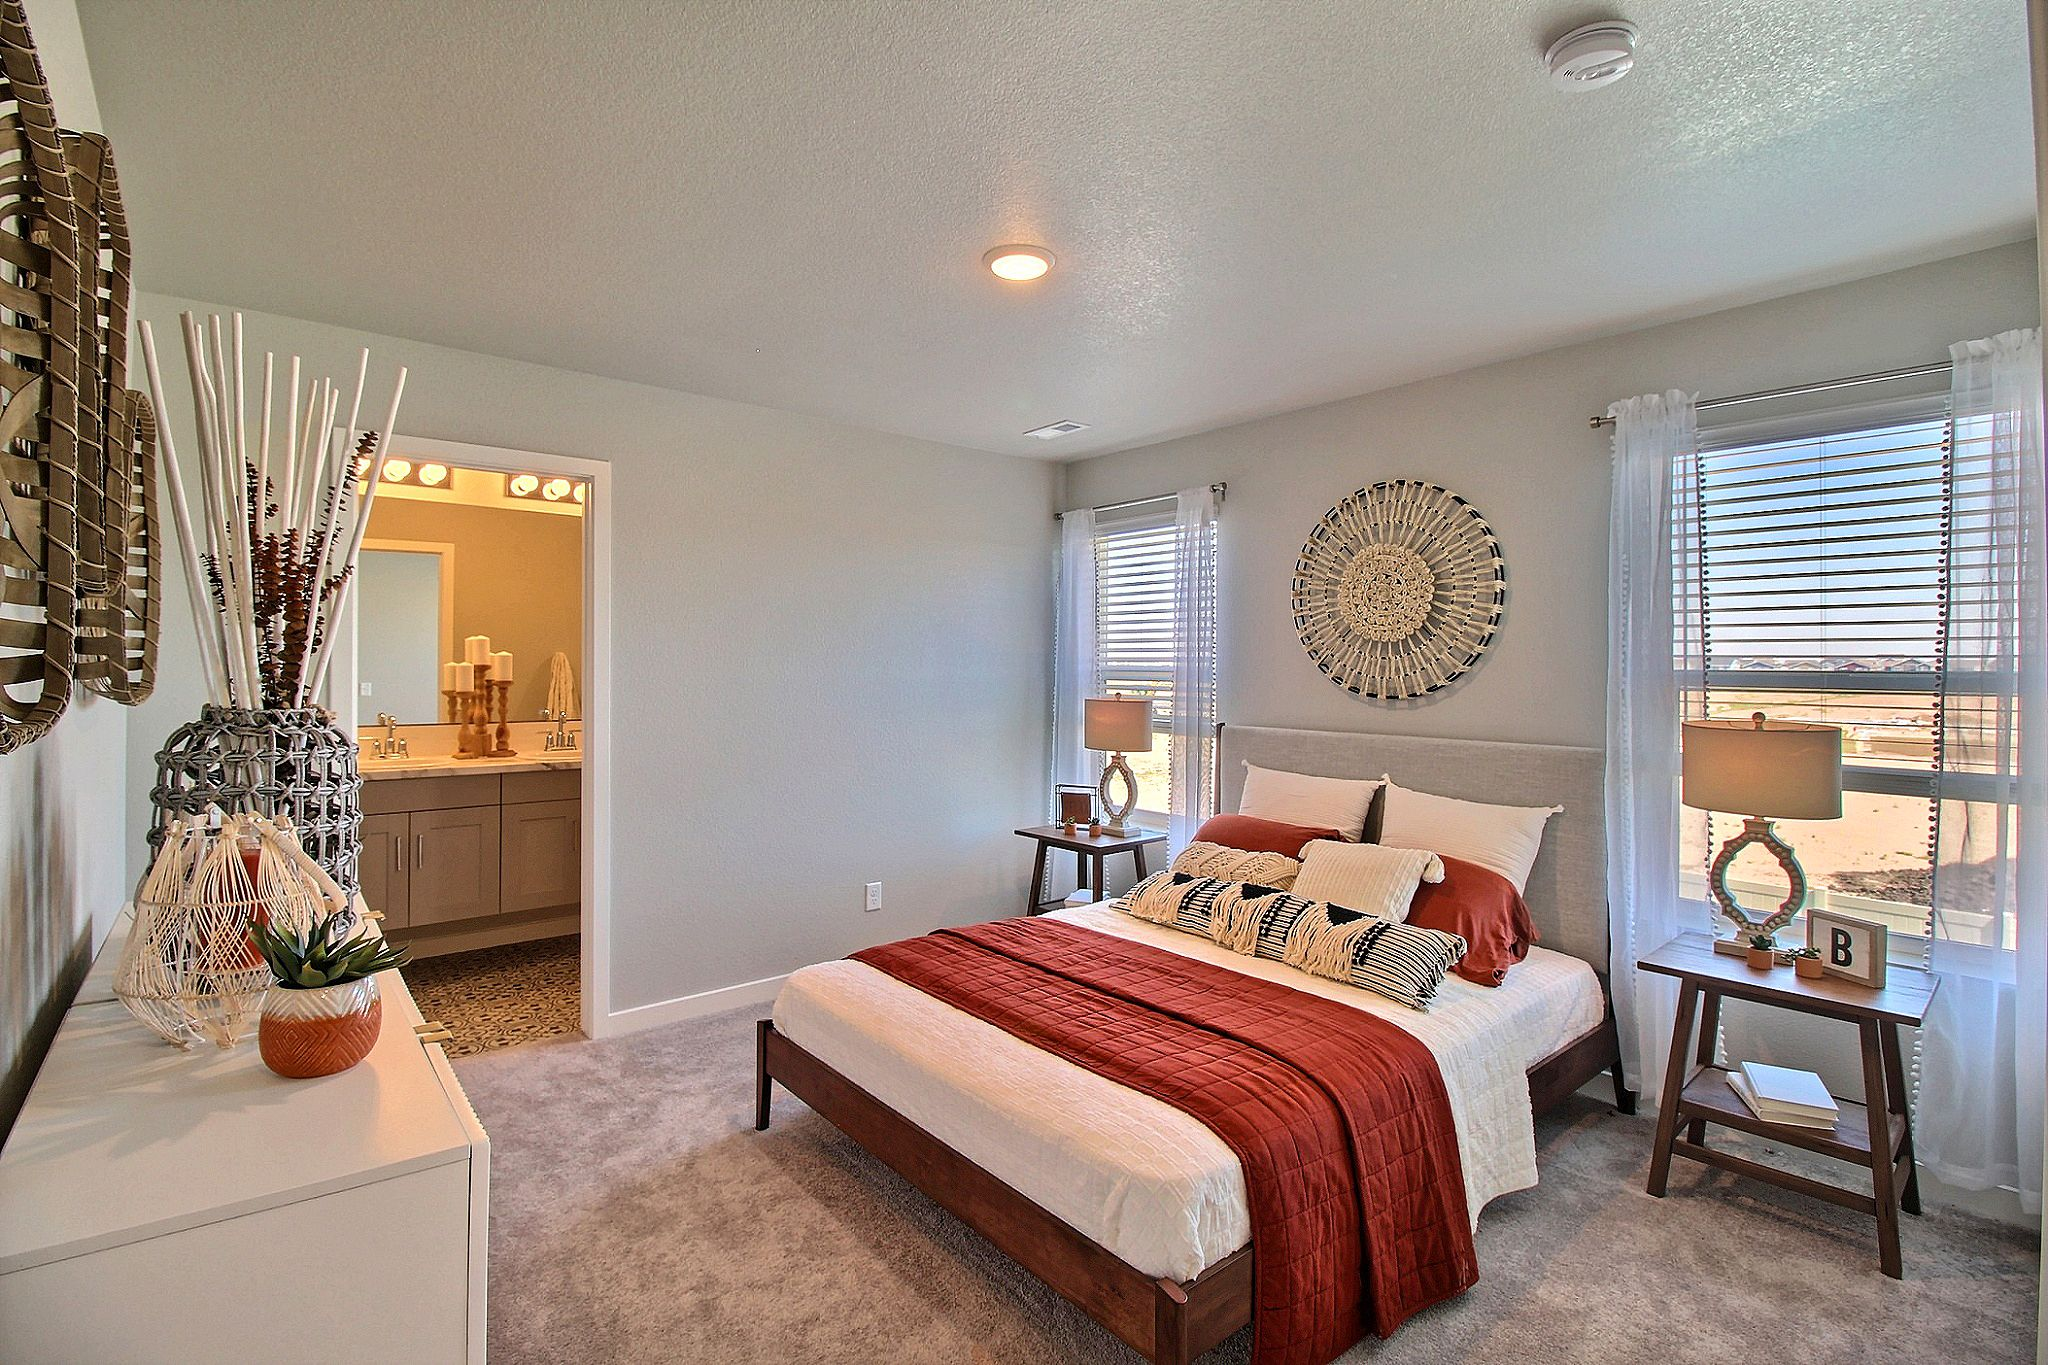 Bedroom featured in the Weston By Baessler Homes in Greeley, CO